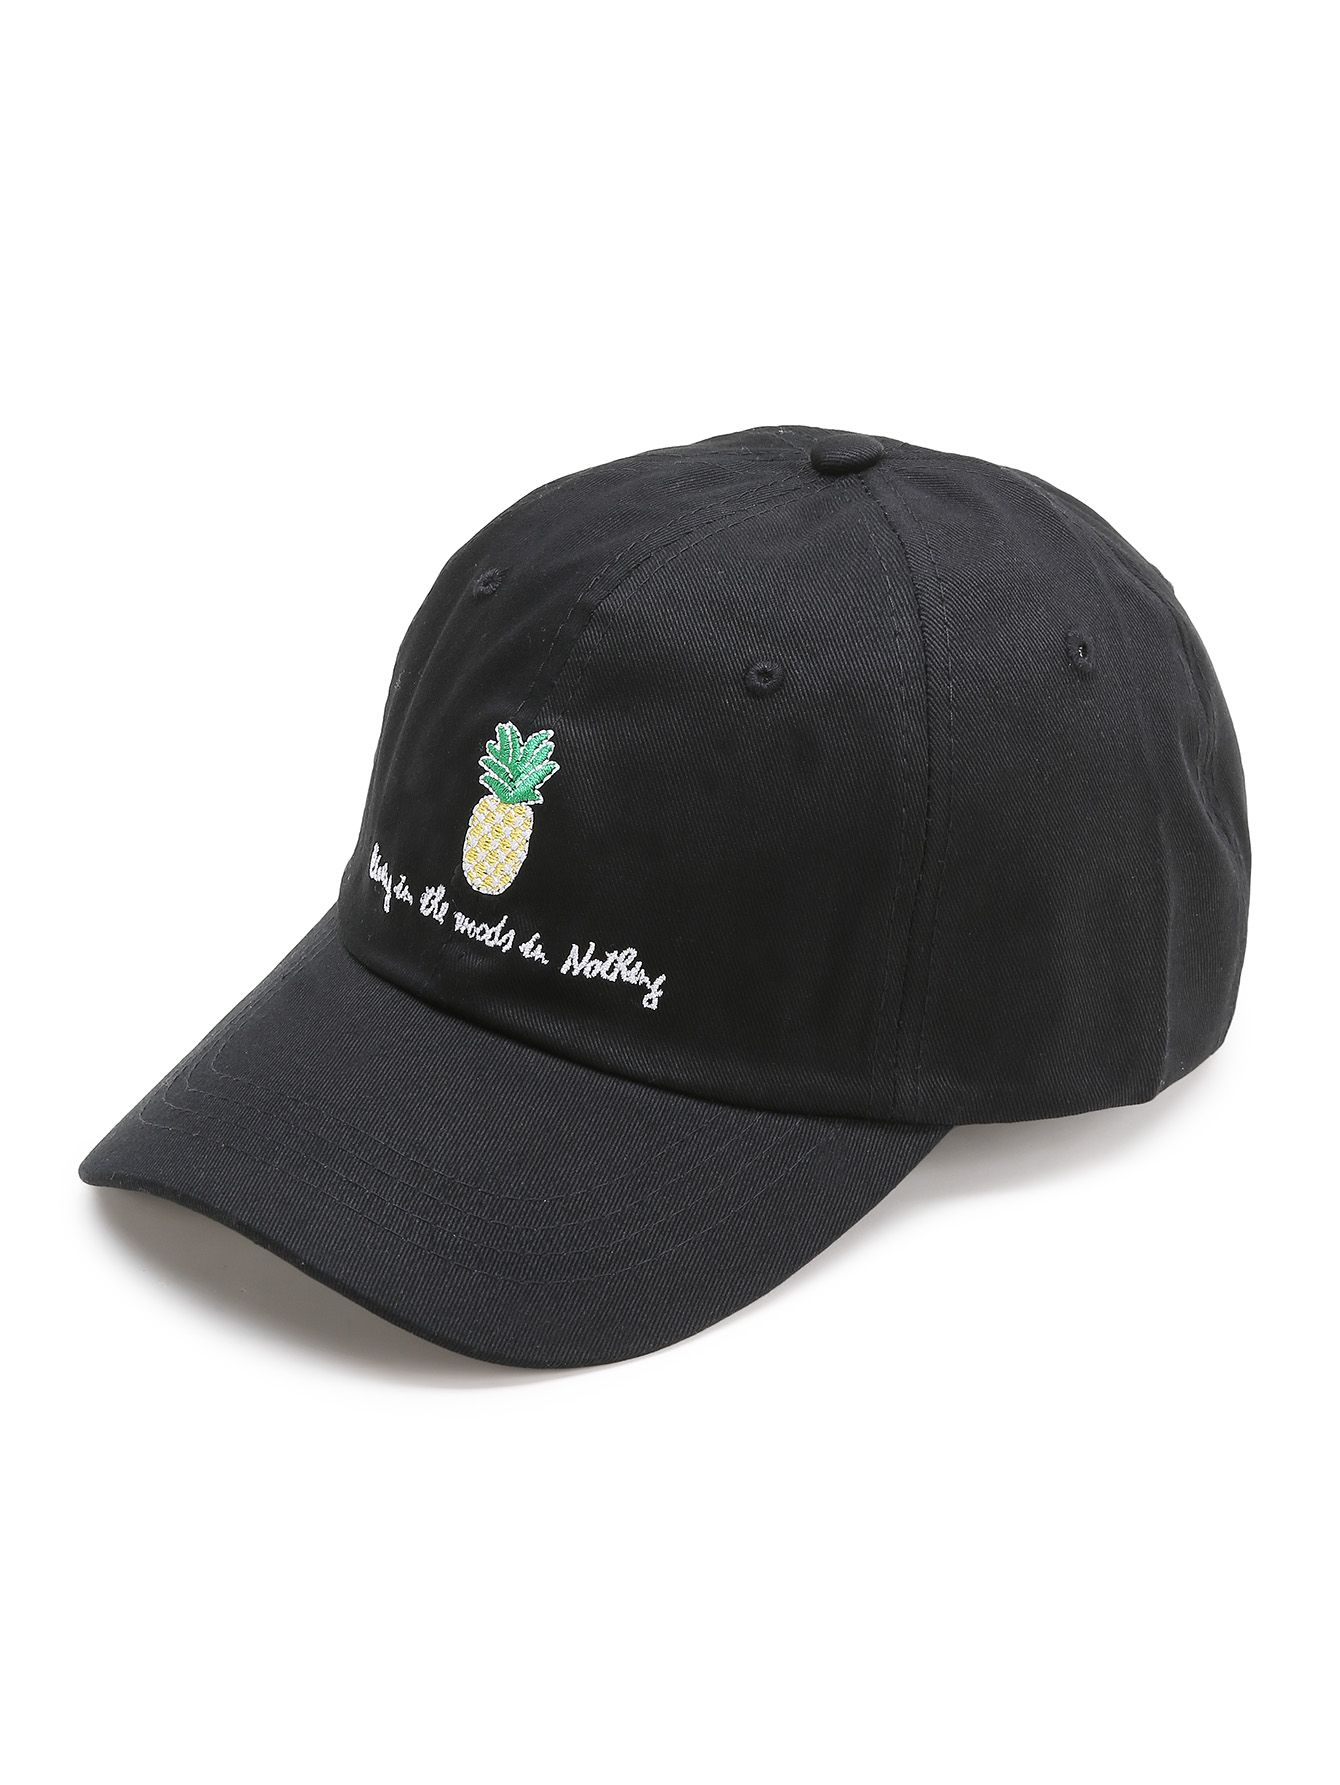 84421cdc25fa2 Shop Black Pineapple Embroidery Baseball Cap online. SheIn offers Black  Pineapple Embroidery Baseball Cap   more to fit your fashionable needs.